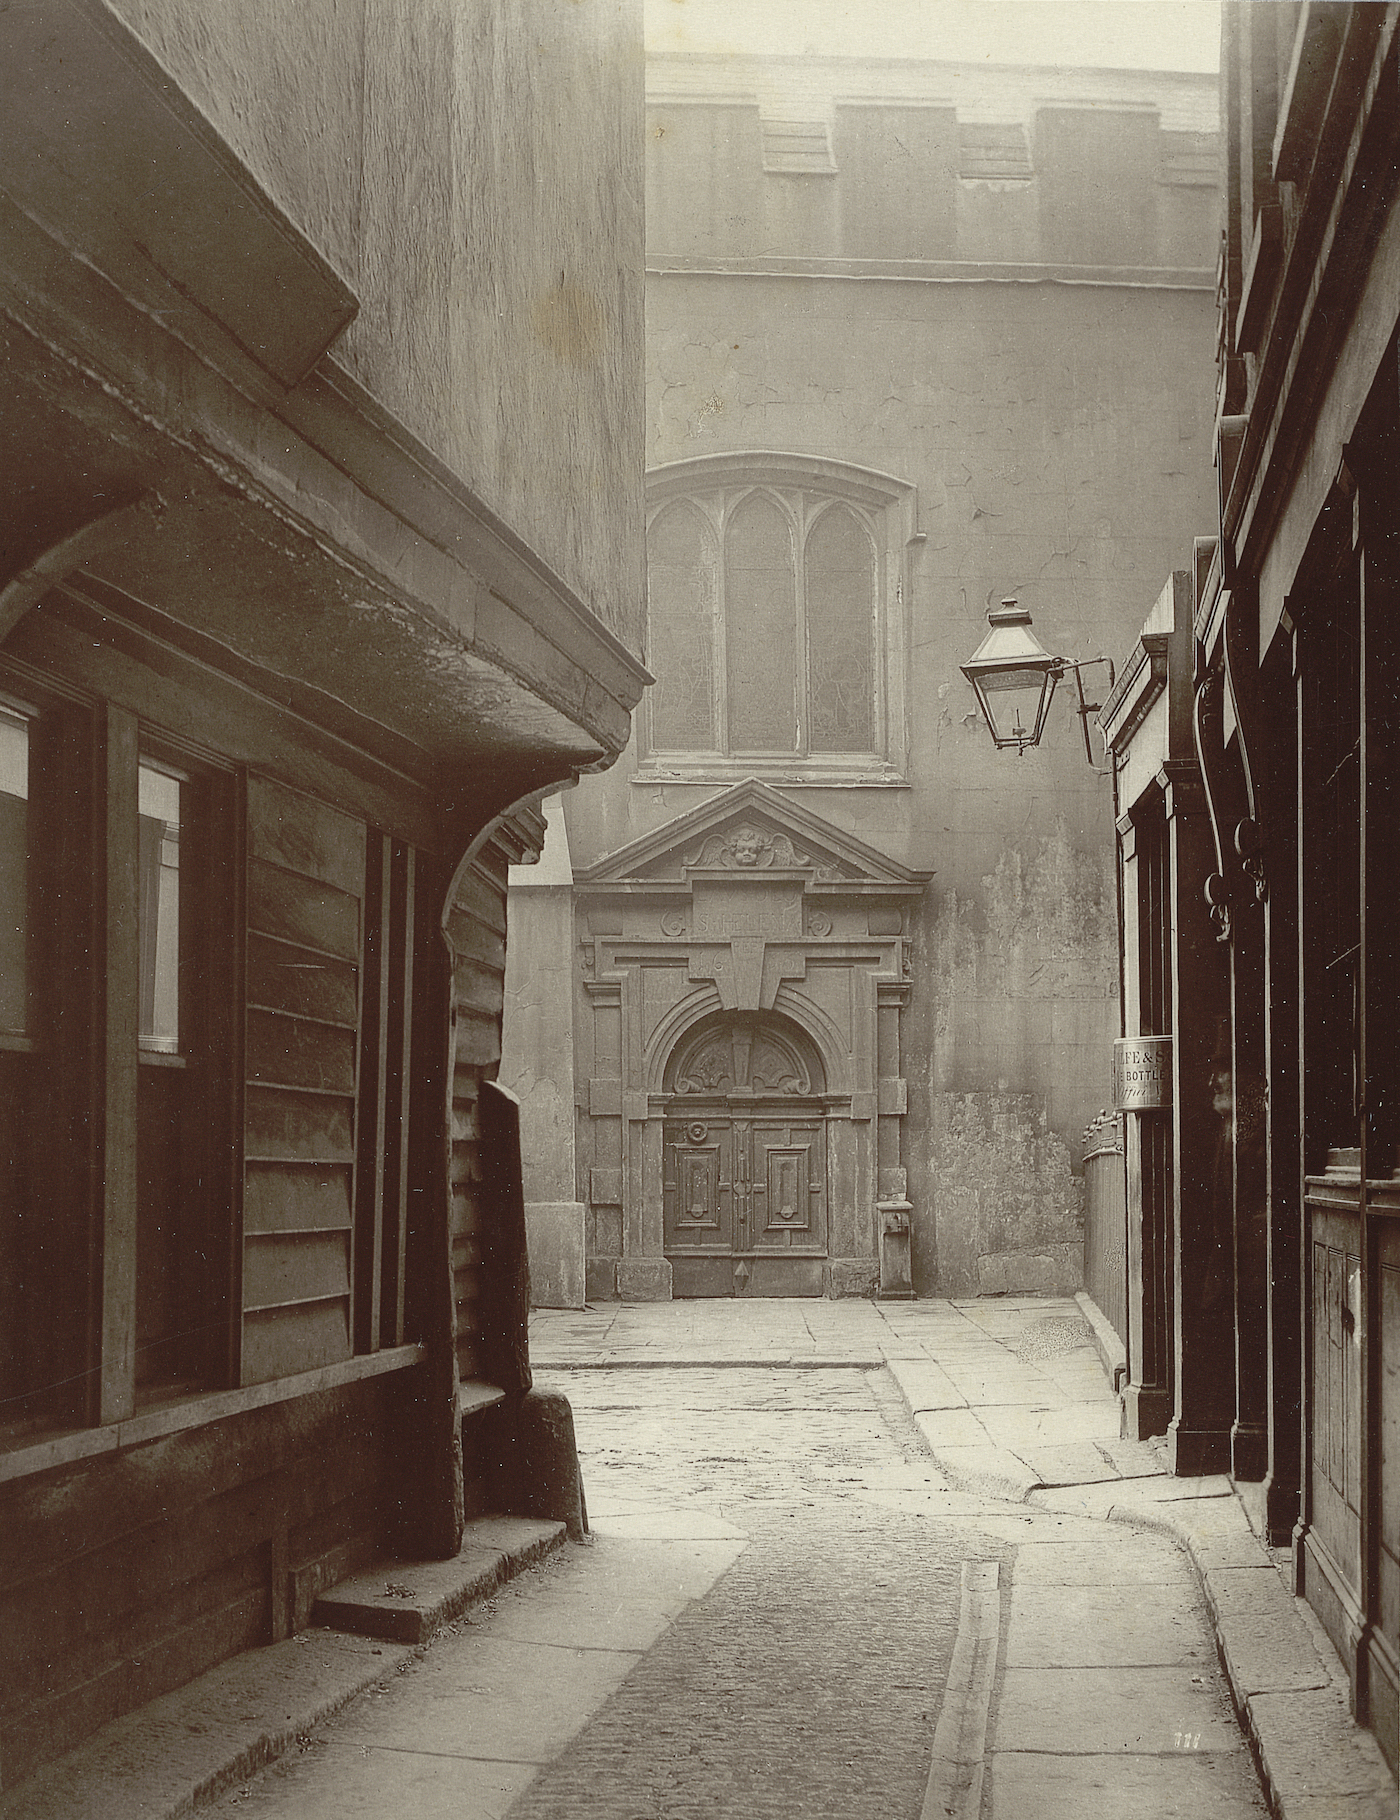 """Henry and Thomas James Dixon, no. 111, """"Great St. Helen's"""" (1886), carbon print mounted on card, from 'Relics of Old London' (Society for Photographing Relics of Old London, 1875–1886, Yale Center for British Art, Paul Mellon Collection)"""